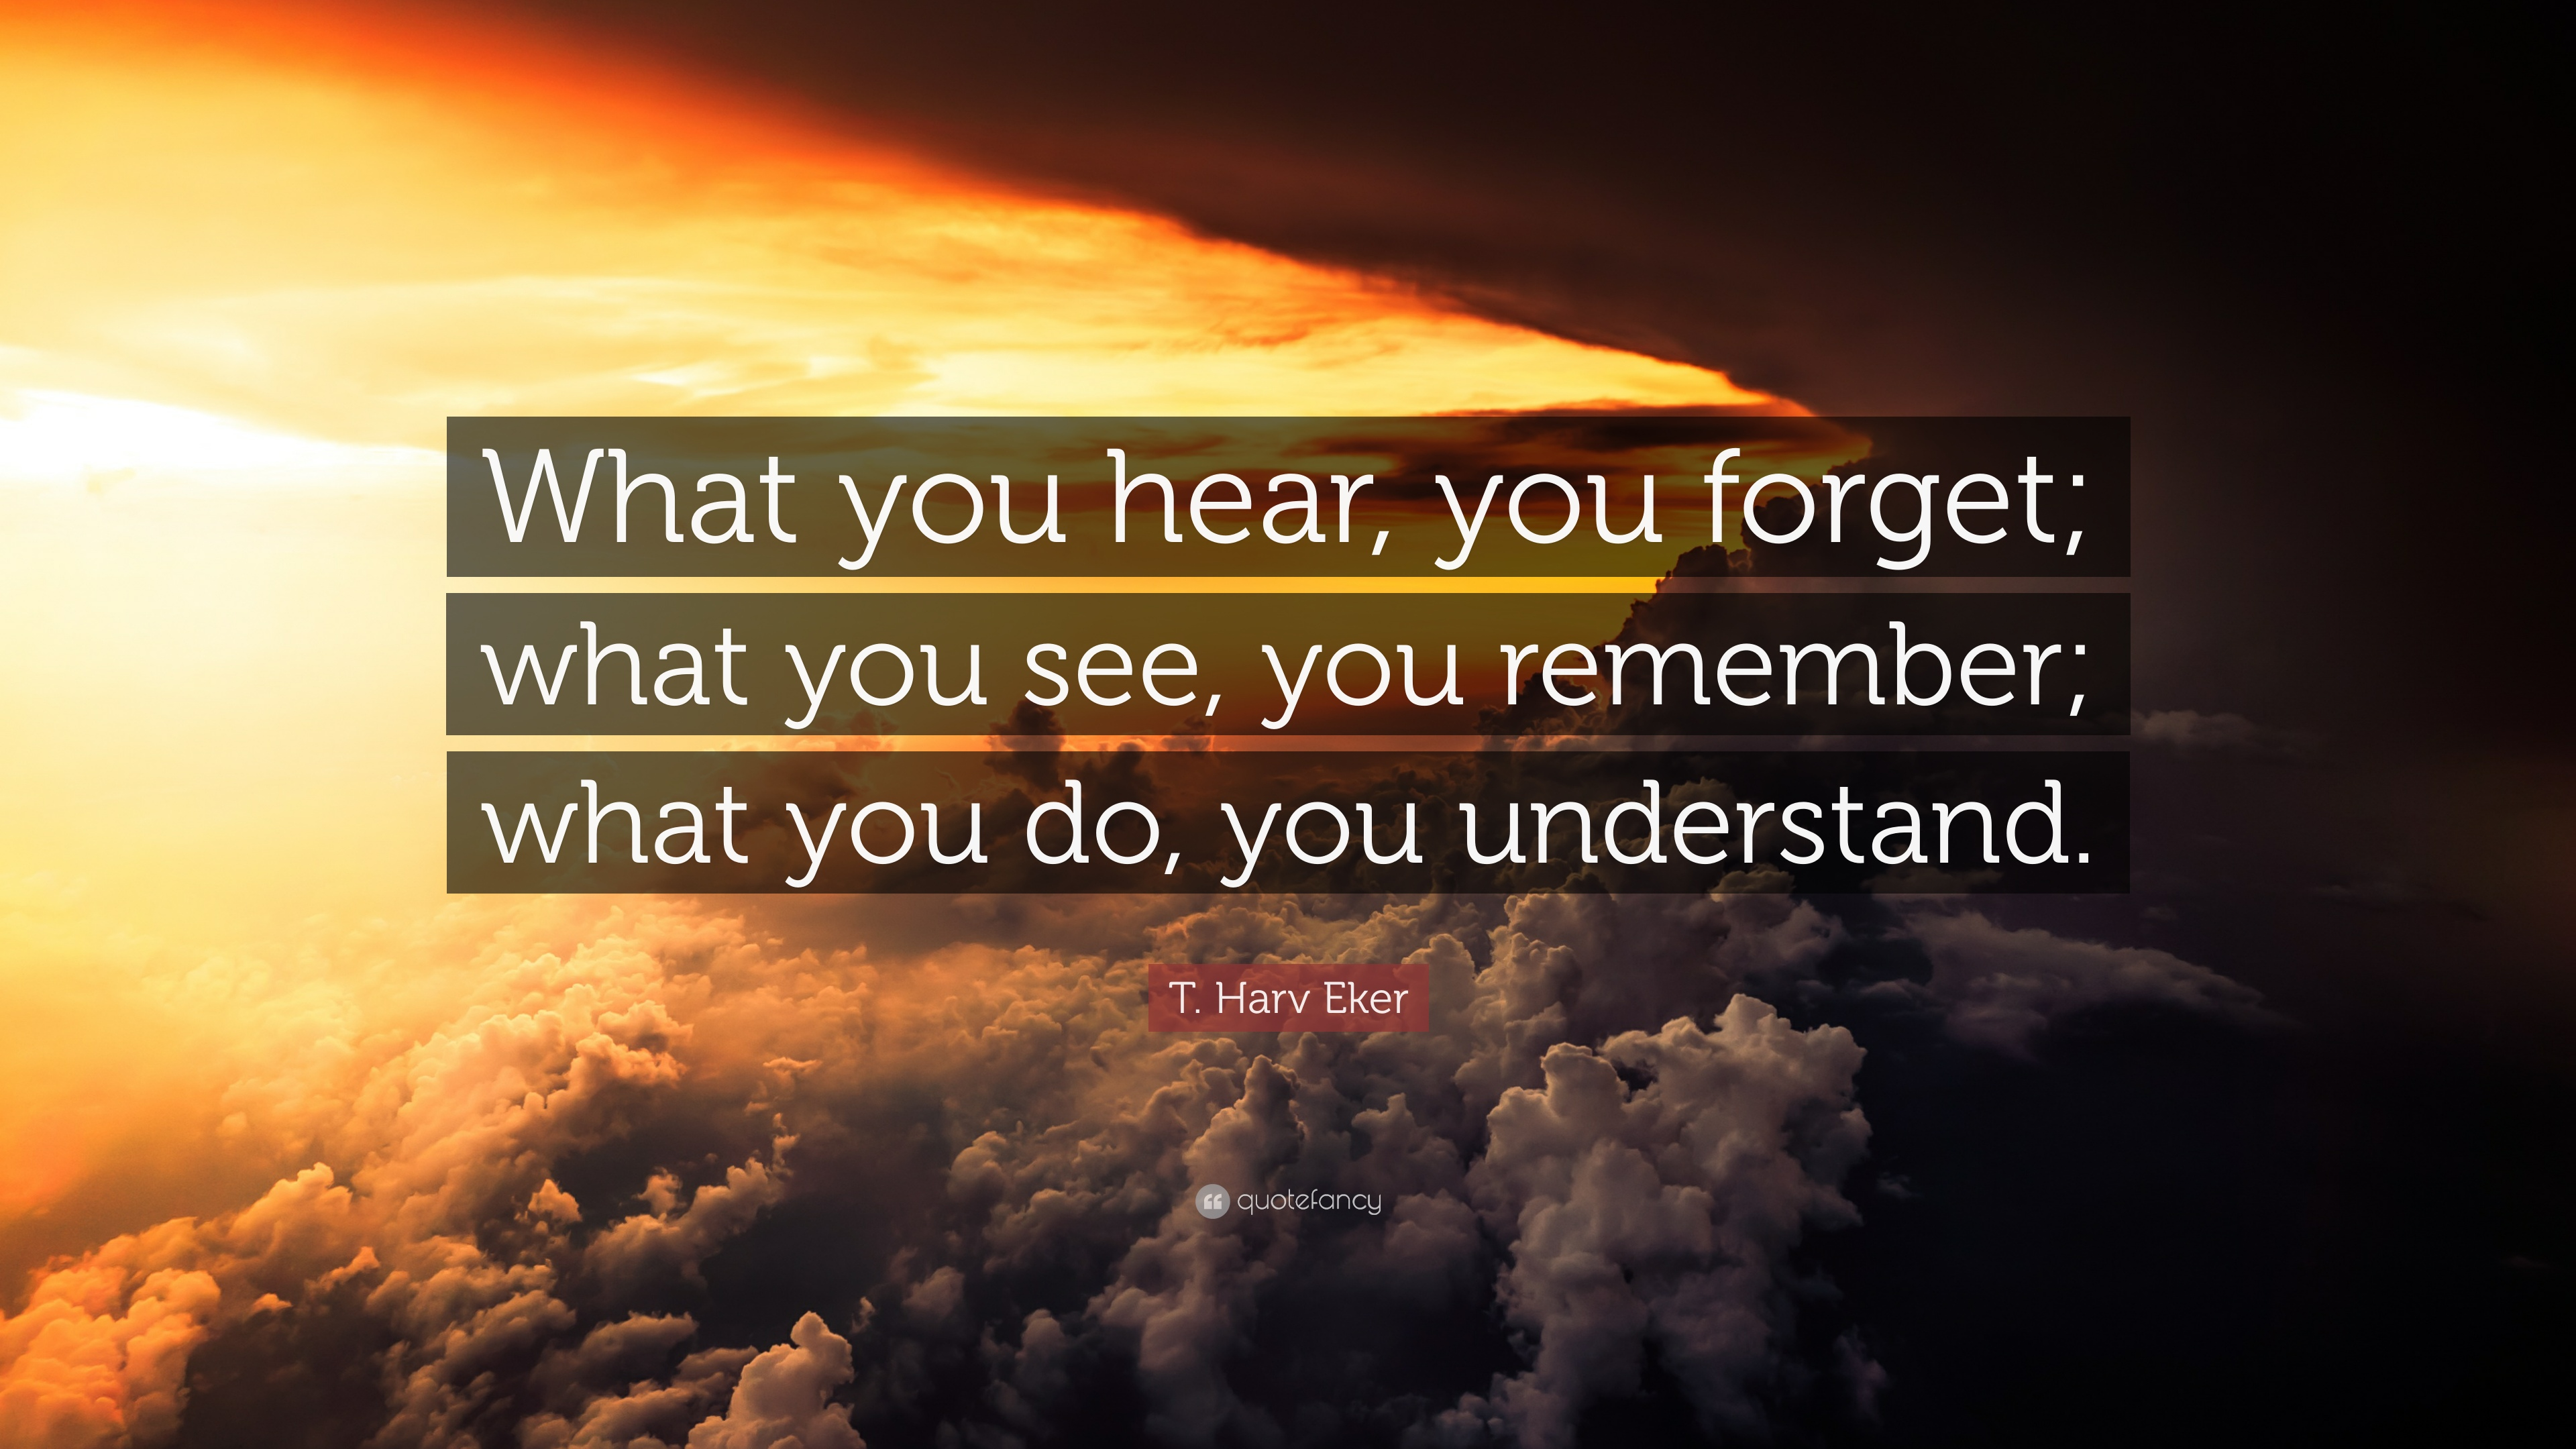 Wallpaper Motivational Quotes 42 T Harv Eker Quote What You Hear You Forget What You